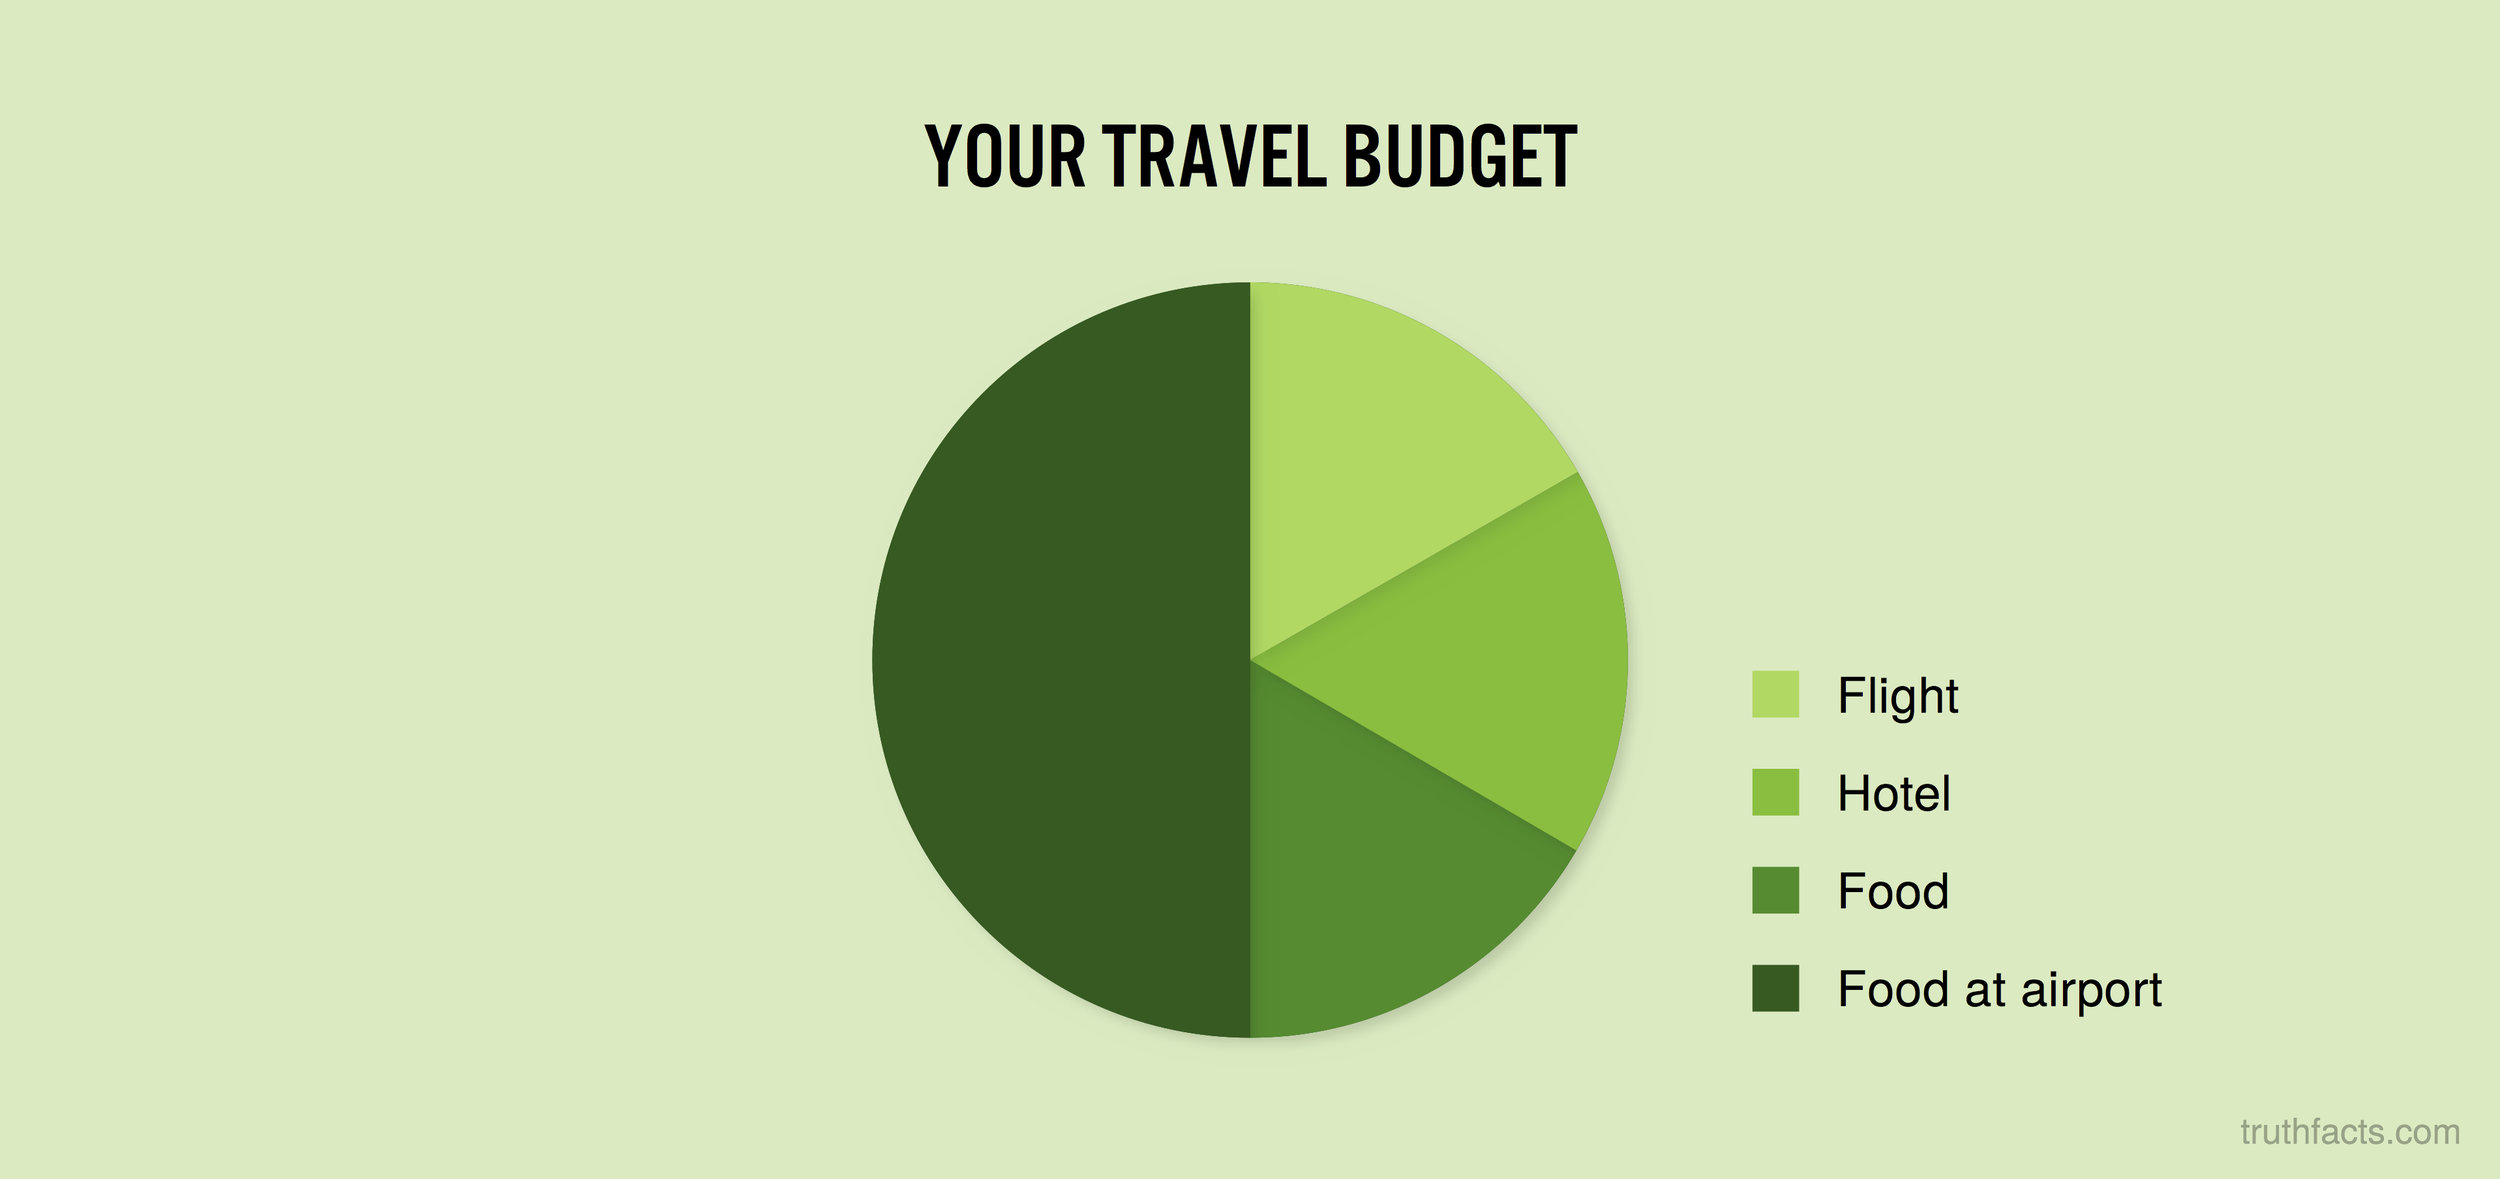 Your travel budget